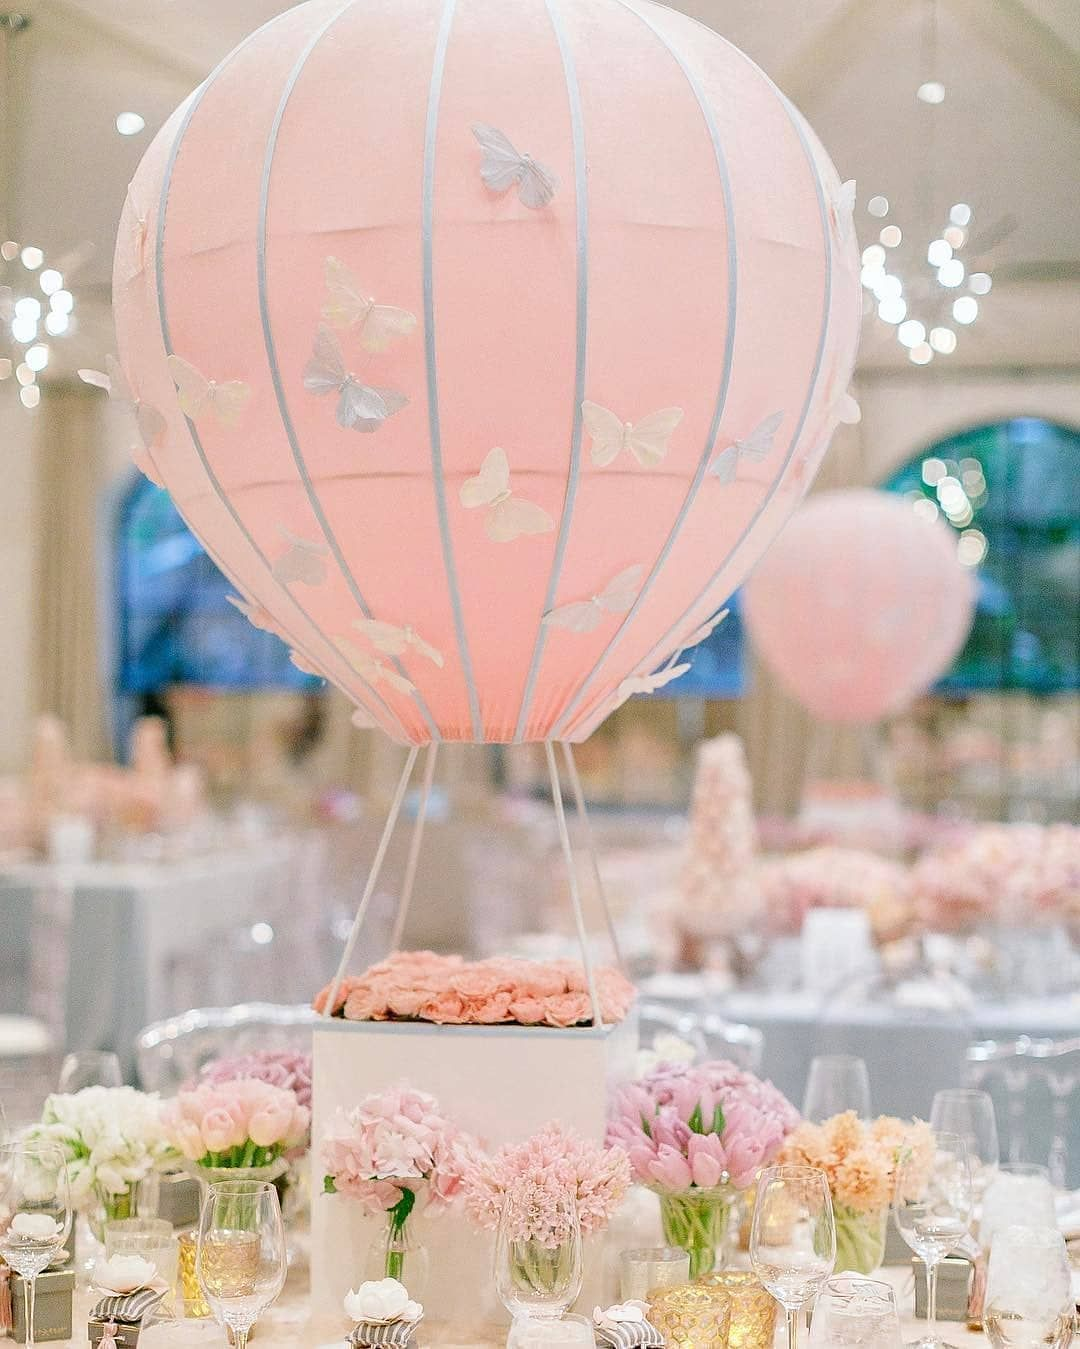 These baby pink hot air balloons with florals surround the